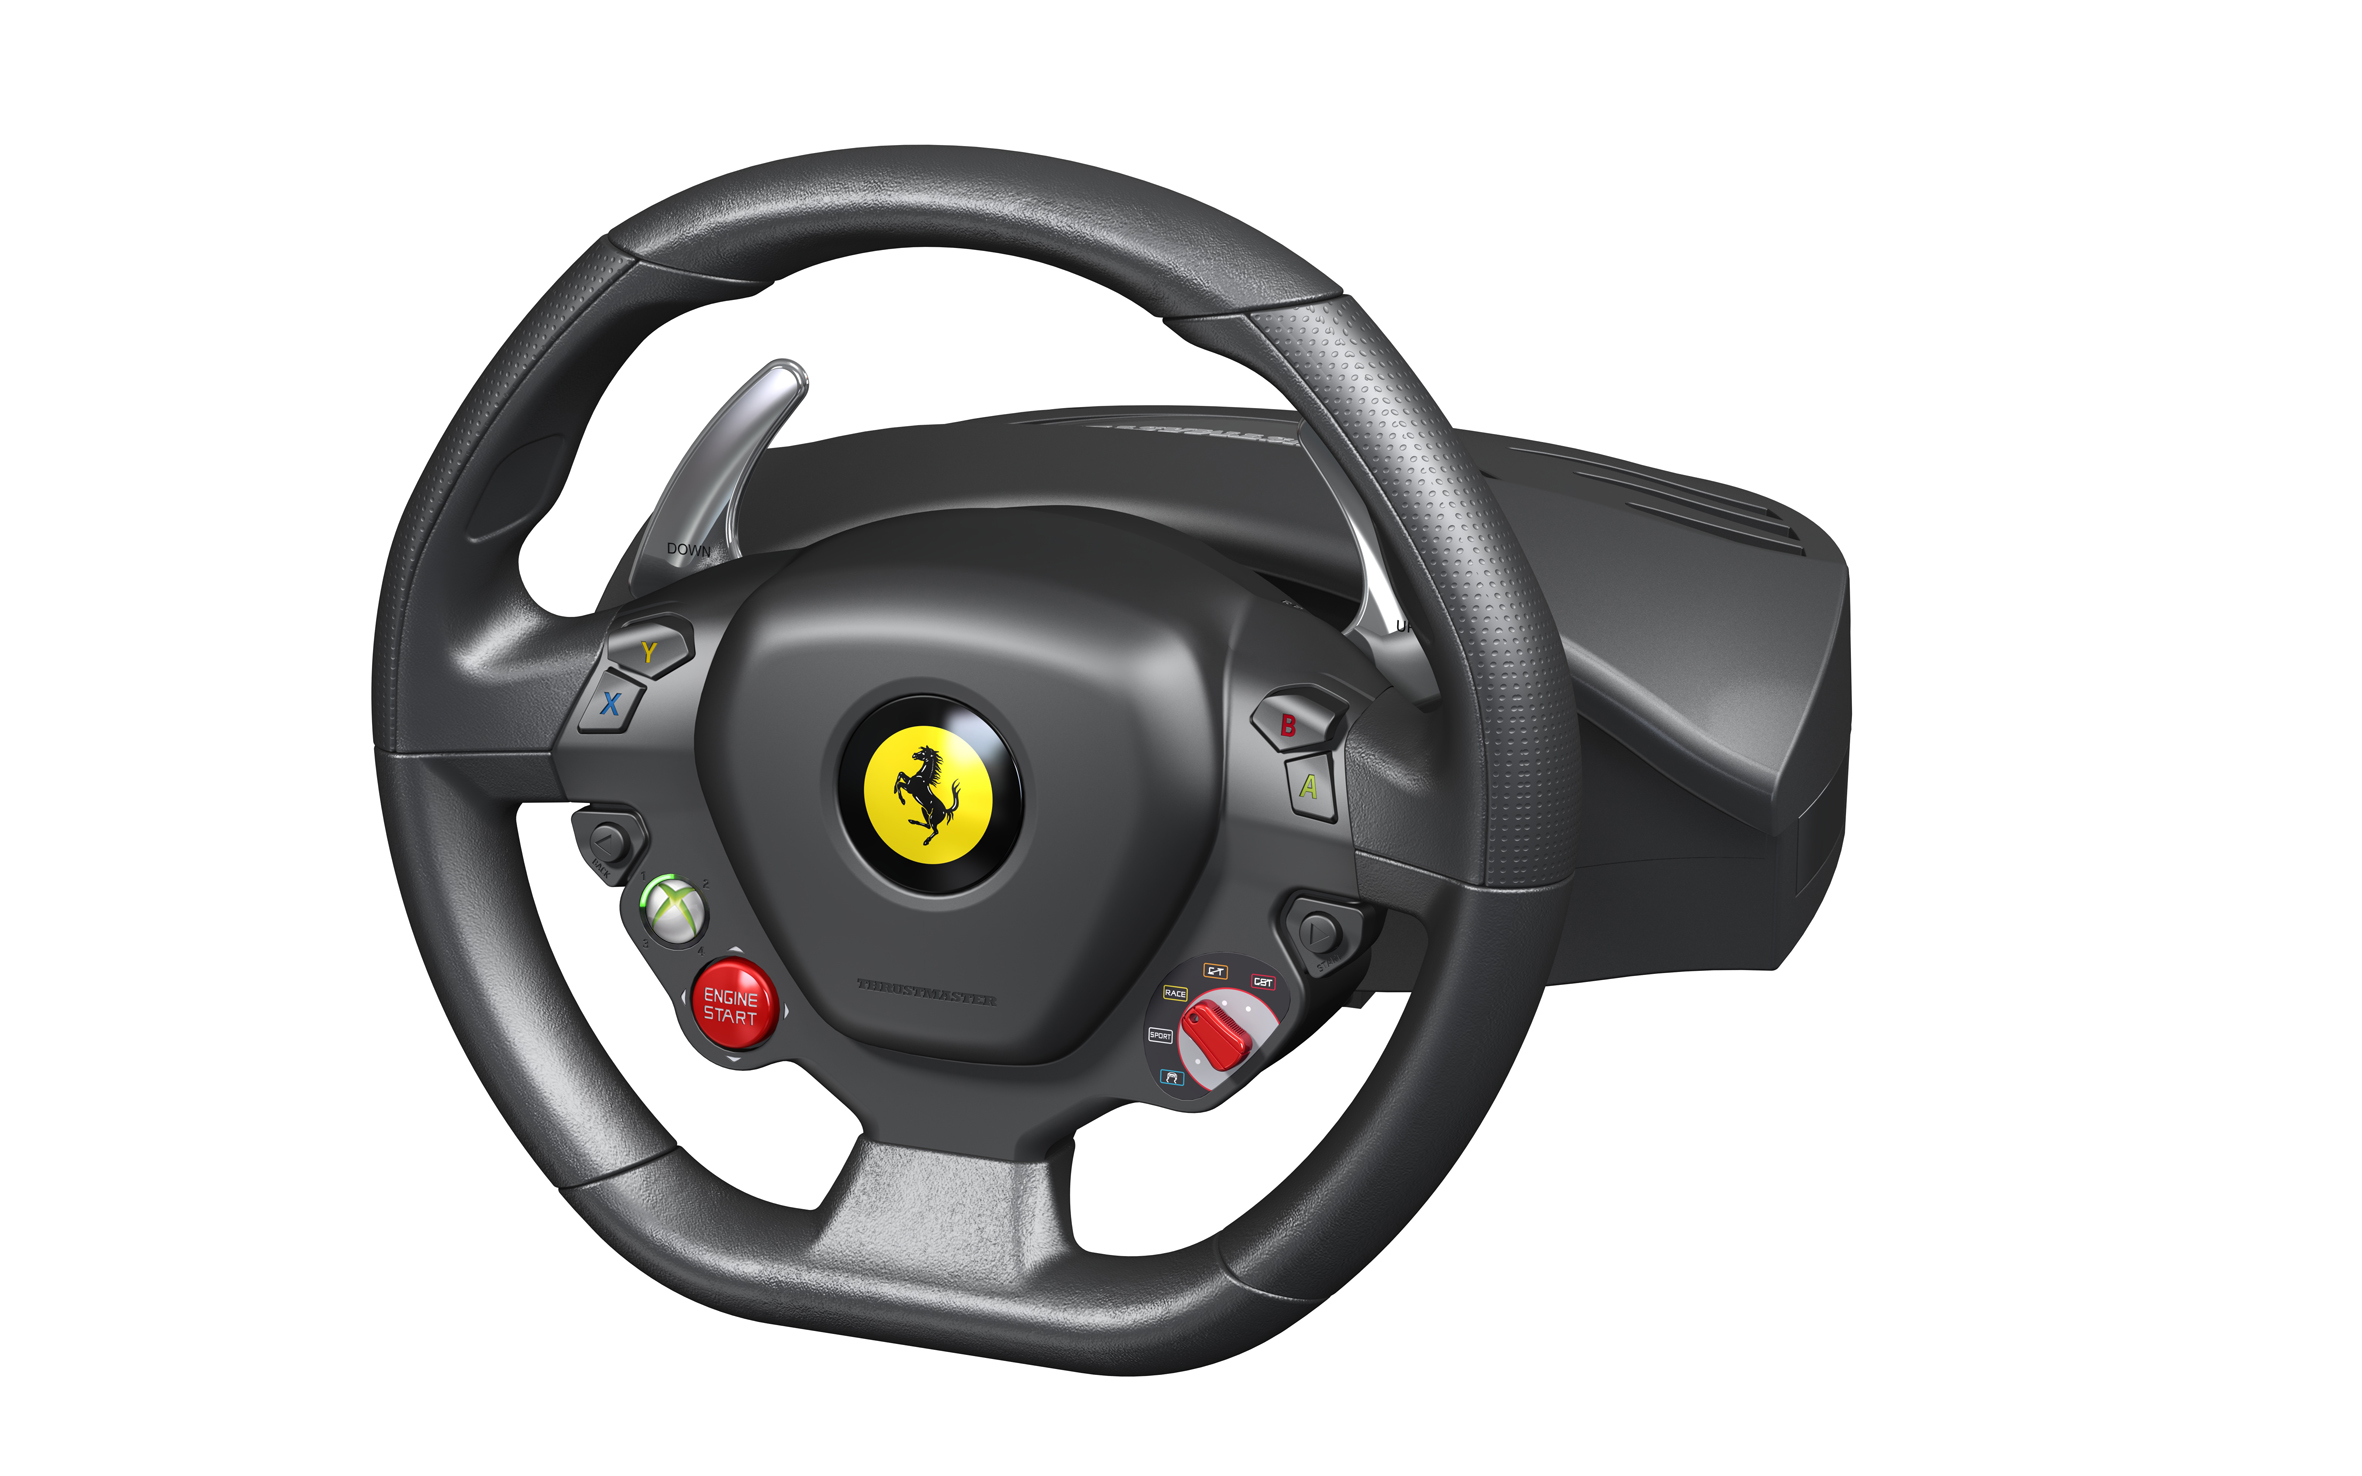 Thrustmaster unveil a fleet of Ferrari peripherals